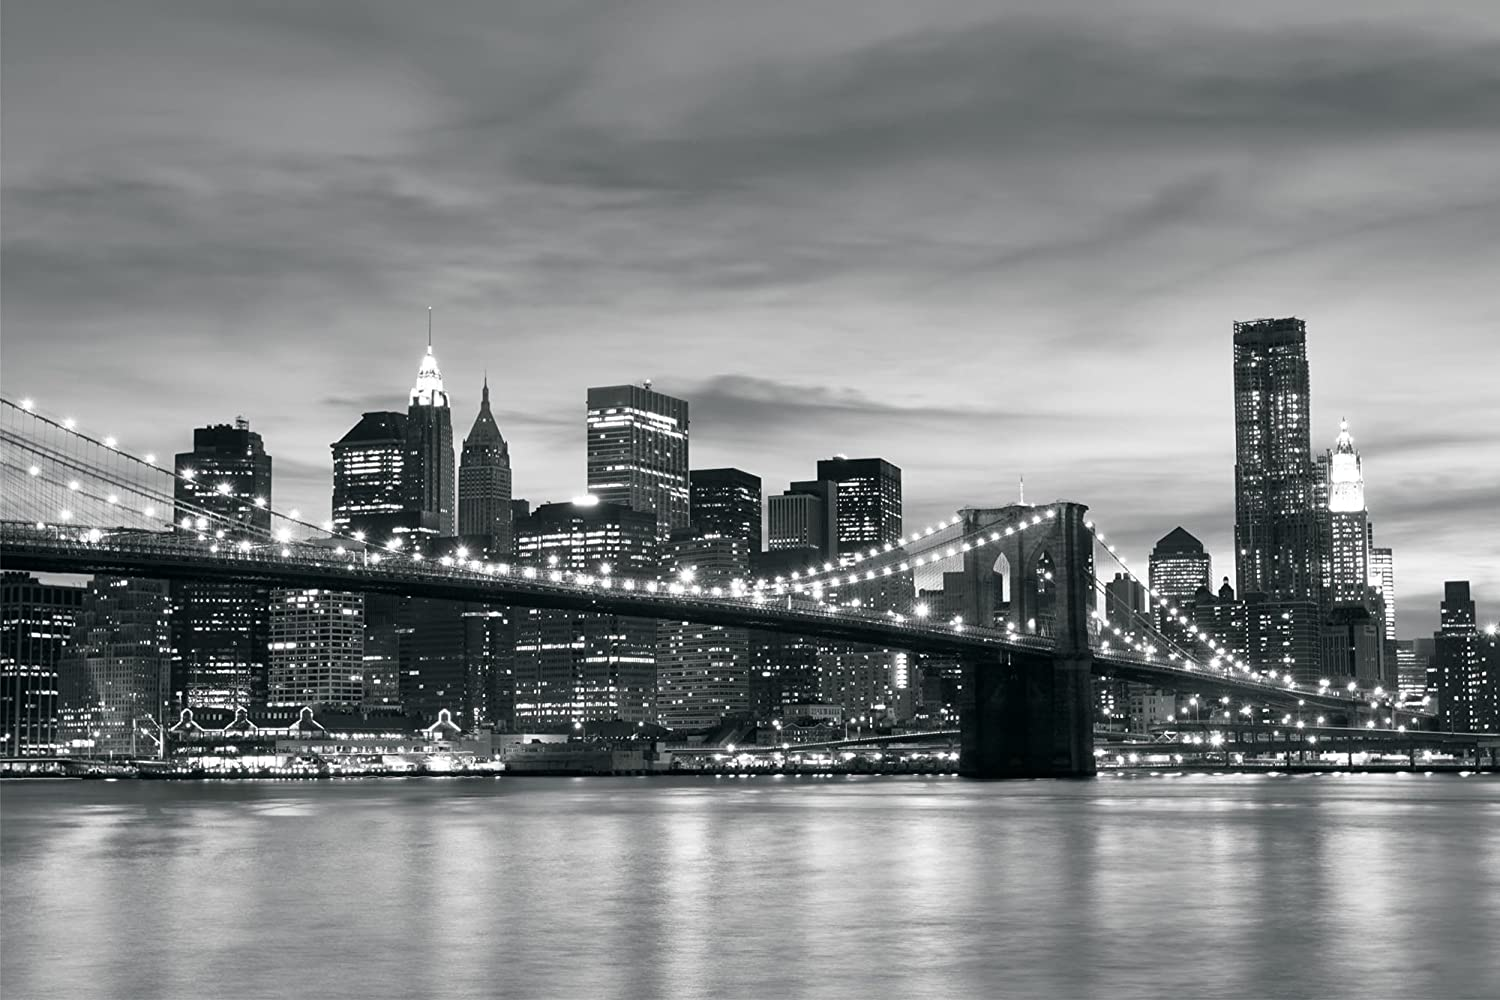 Consalnet brooklyn bridge new york black white wallpaper mural